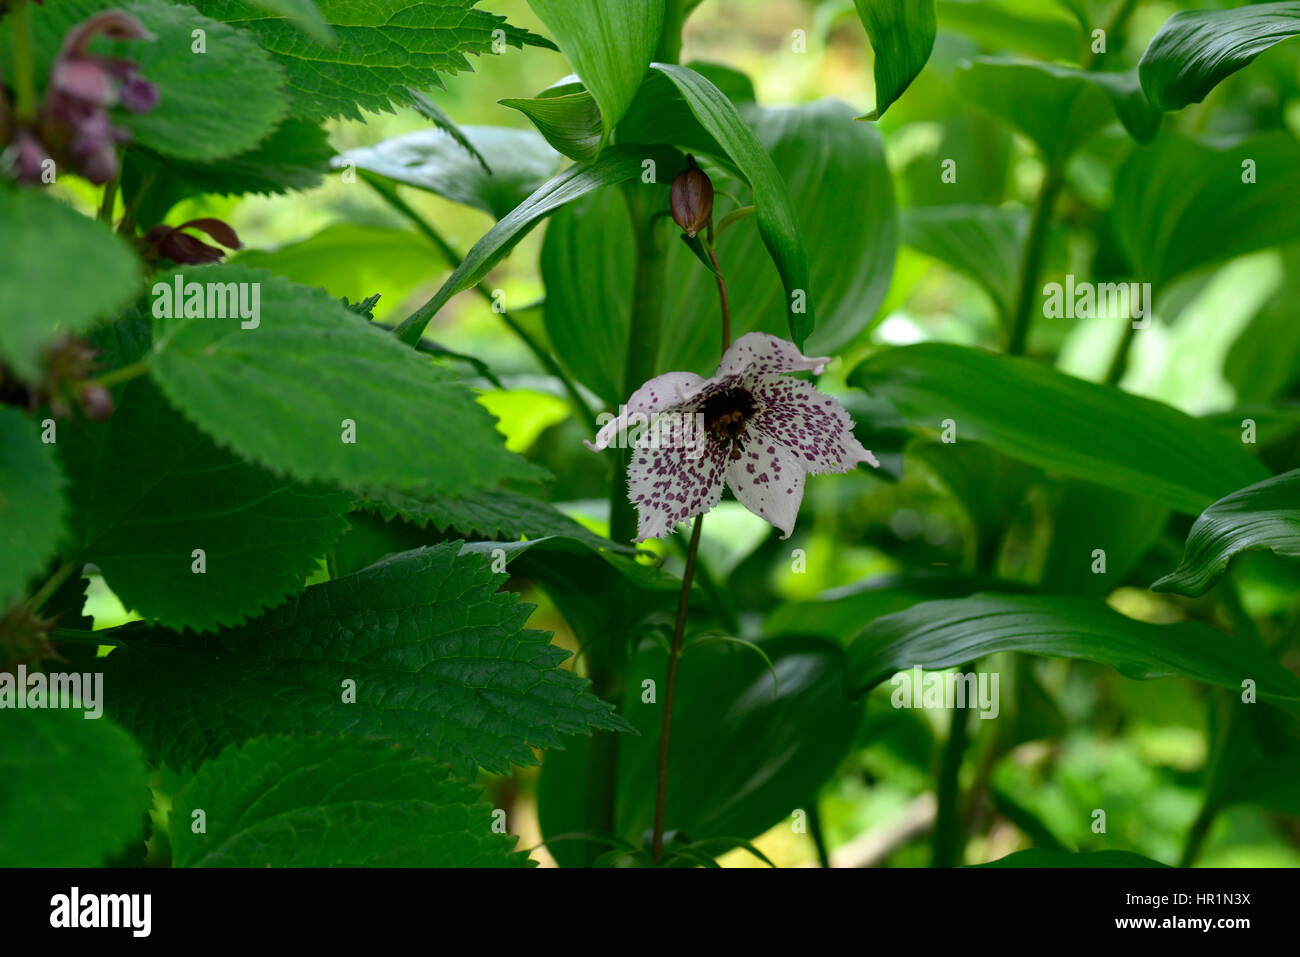 Nomocharis pardanthina pink spotted flower flowers flowering nomocharis pardanthina pink spotted flower flowers flowering wood woodland shade shady shaded lily like perennial bulb bulbs rm floral izmirmasajfo